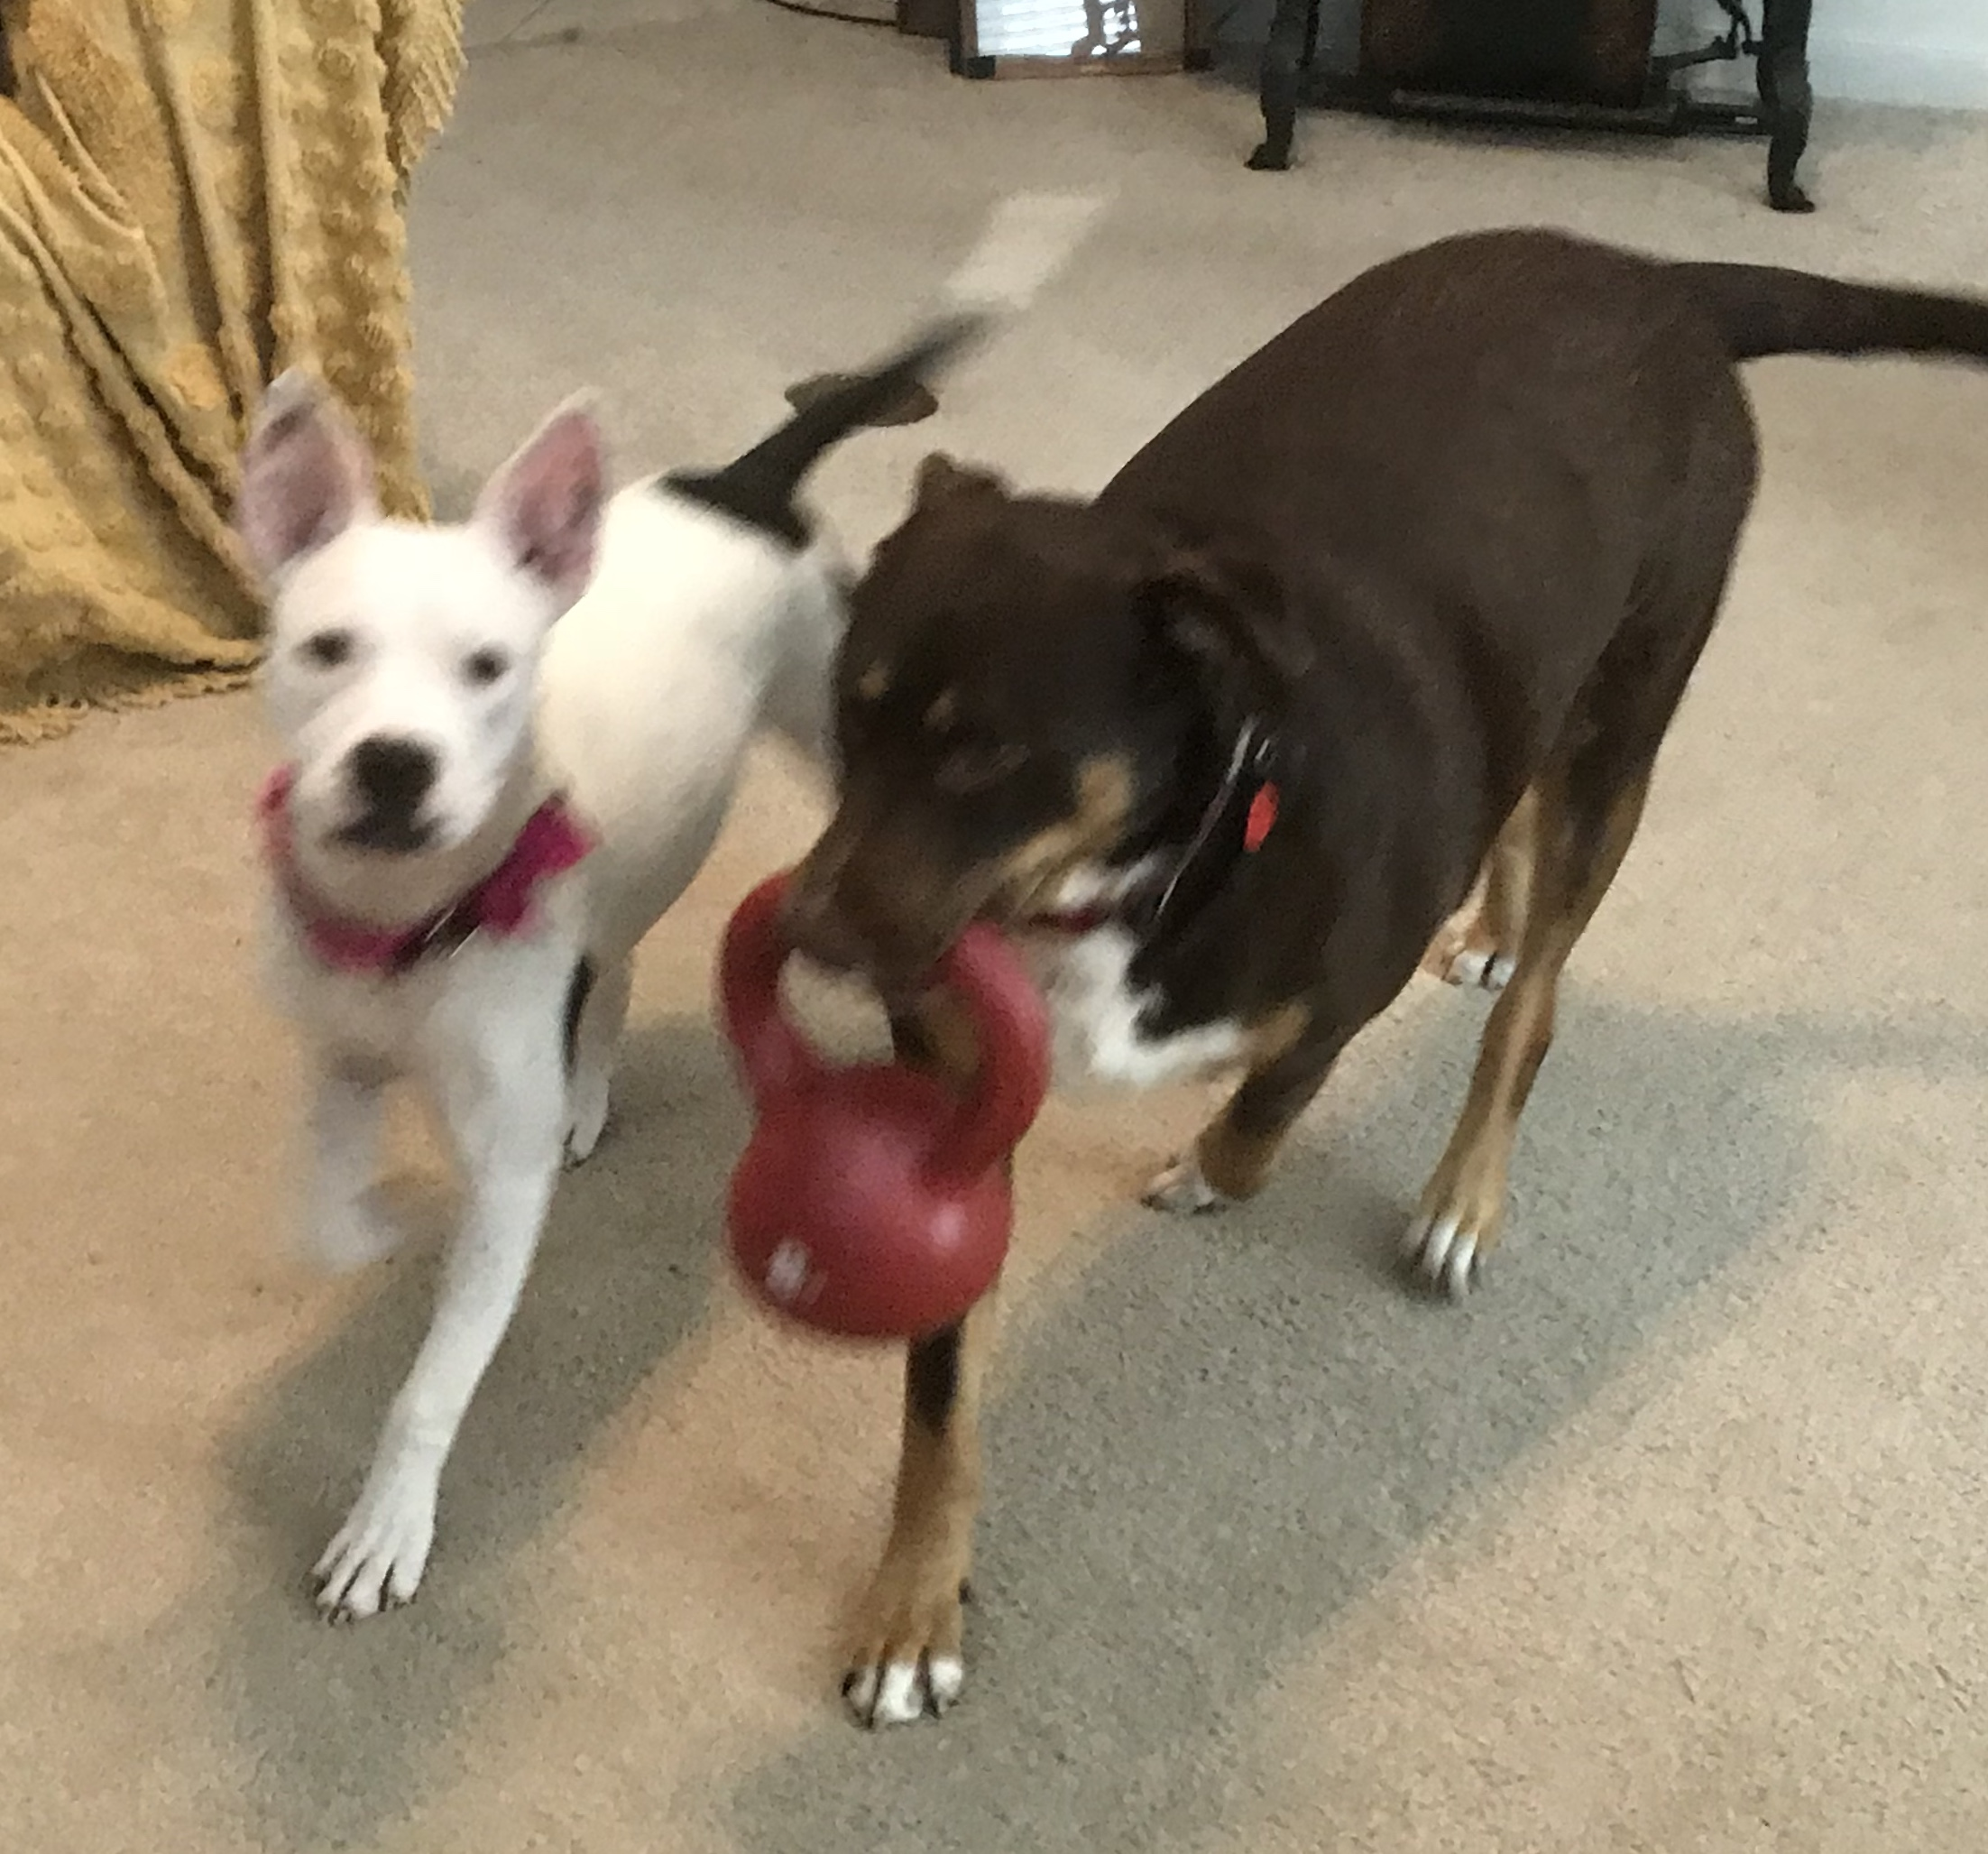 How About A Pet Picture Thread: Dogs, Cats, ...-6bd61504-b5d8-46d1-bb0f-bc08b796472a.jpeg